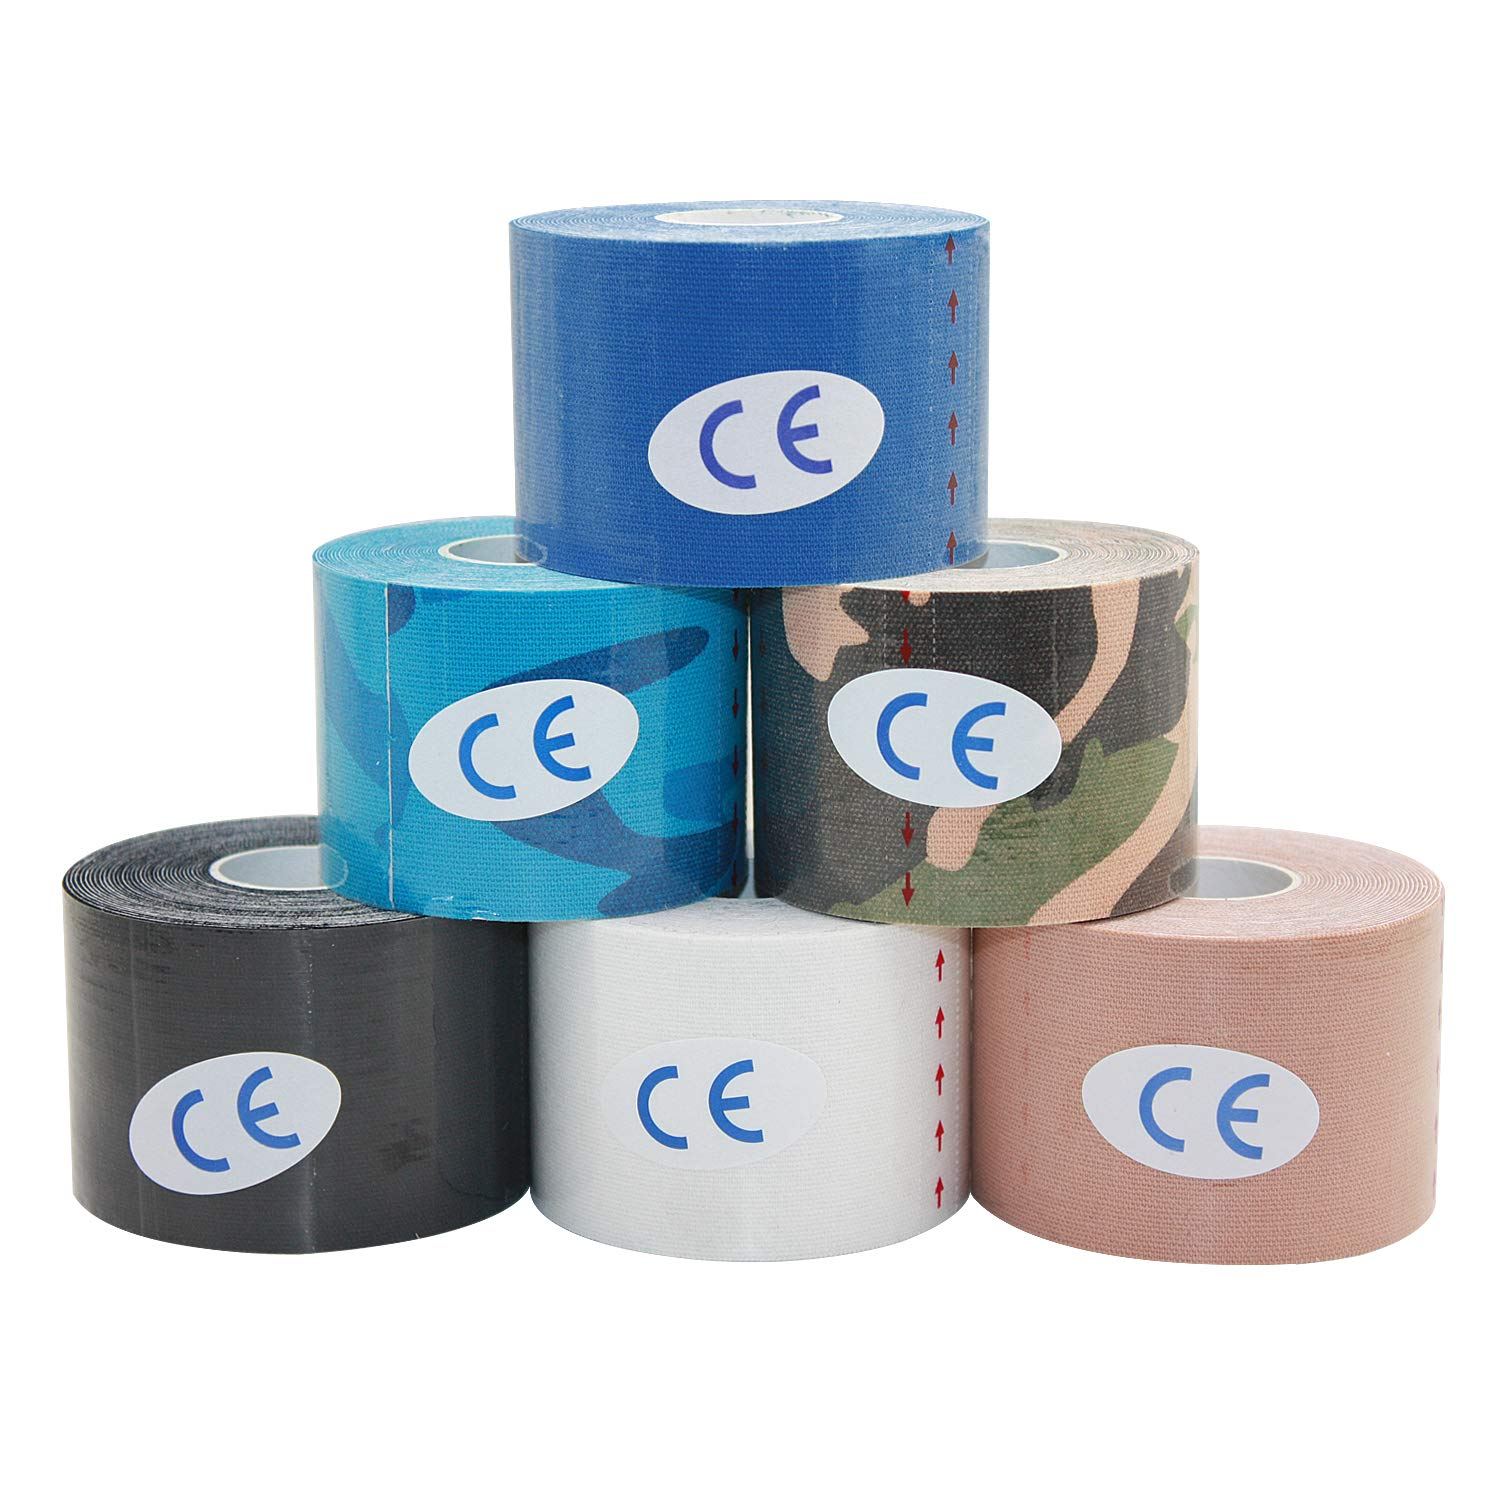 10Rolls 5cm*5m Therapeutic Sports Kinesiology Tape Waterproof Elastic Muscle Tape for Weightlifting Shoulder Knee Elbow Ankle